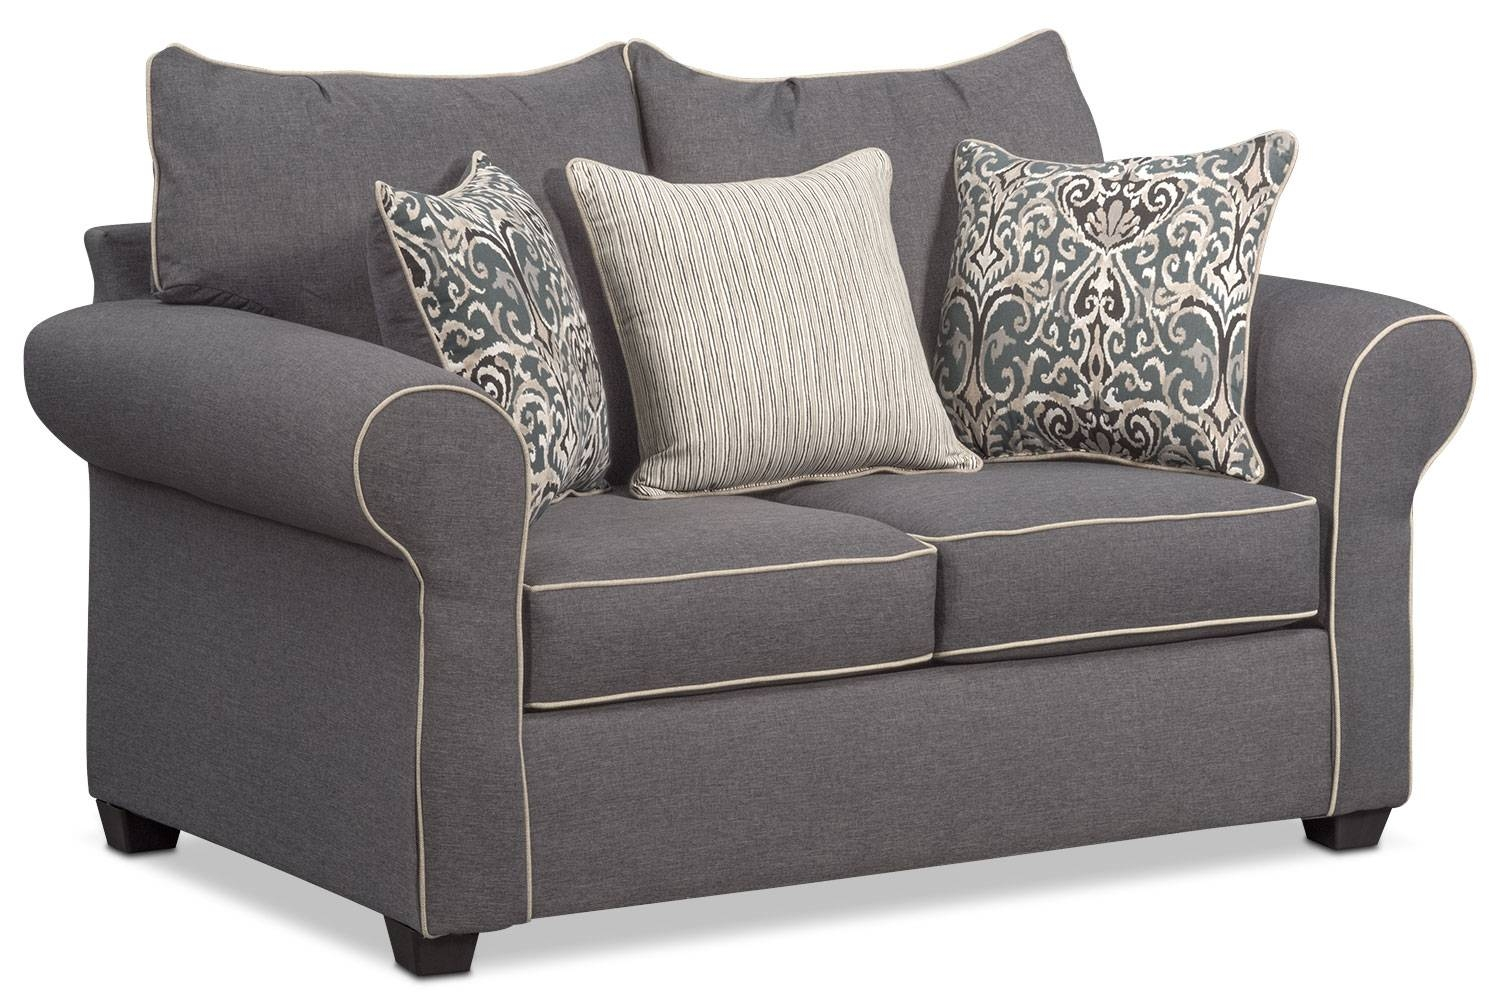 Carla Sofa, Loveseat, And Chair Set - Gray | Value City Furniture in Sofa Loveseat And Chair Set (Image 8 of 30)